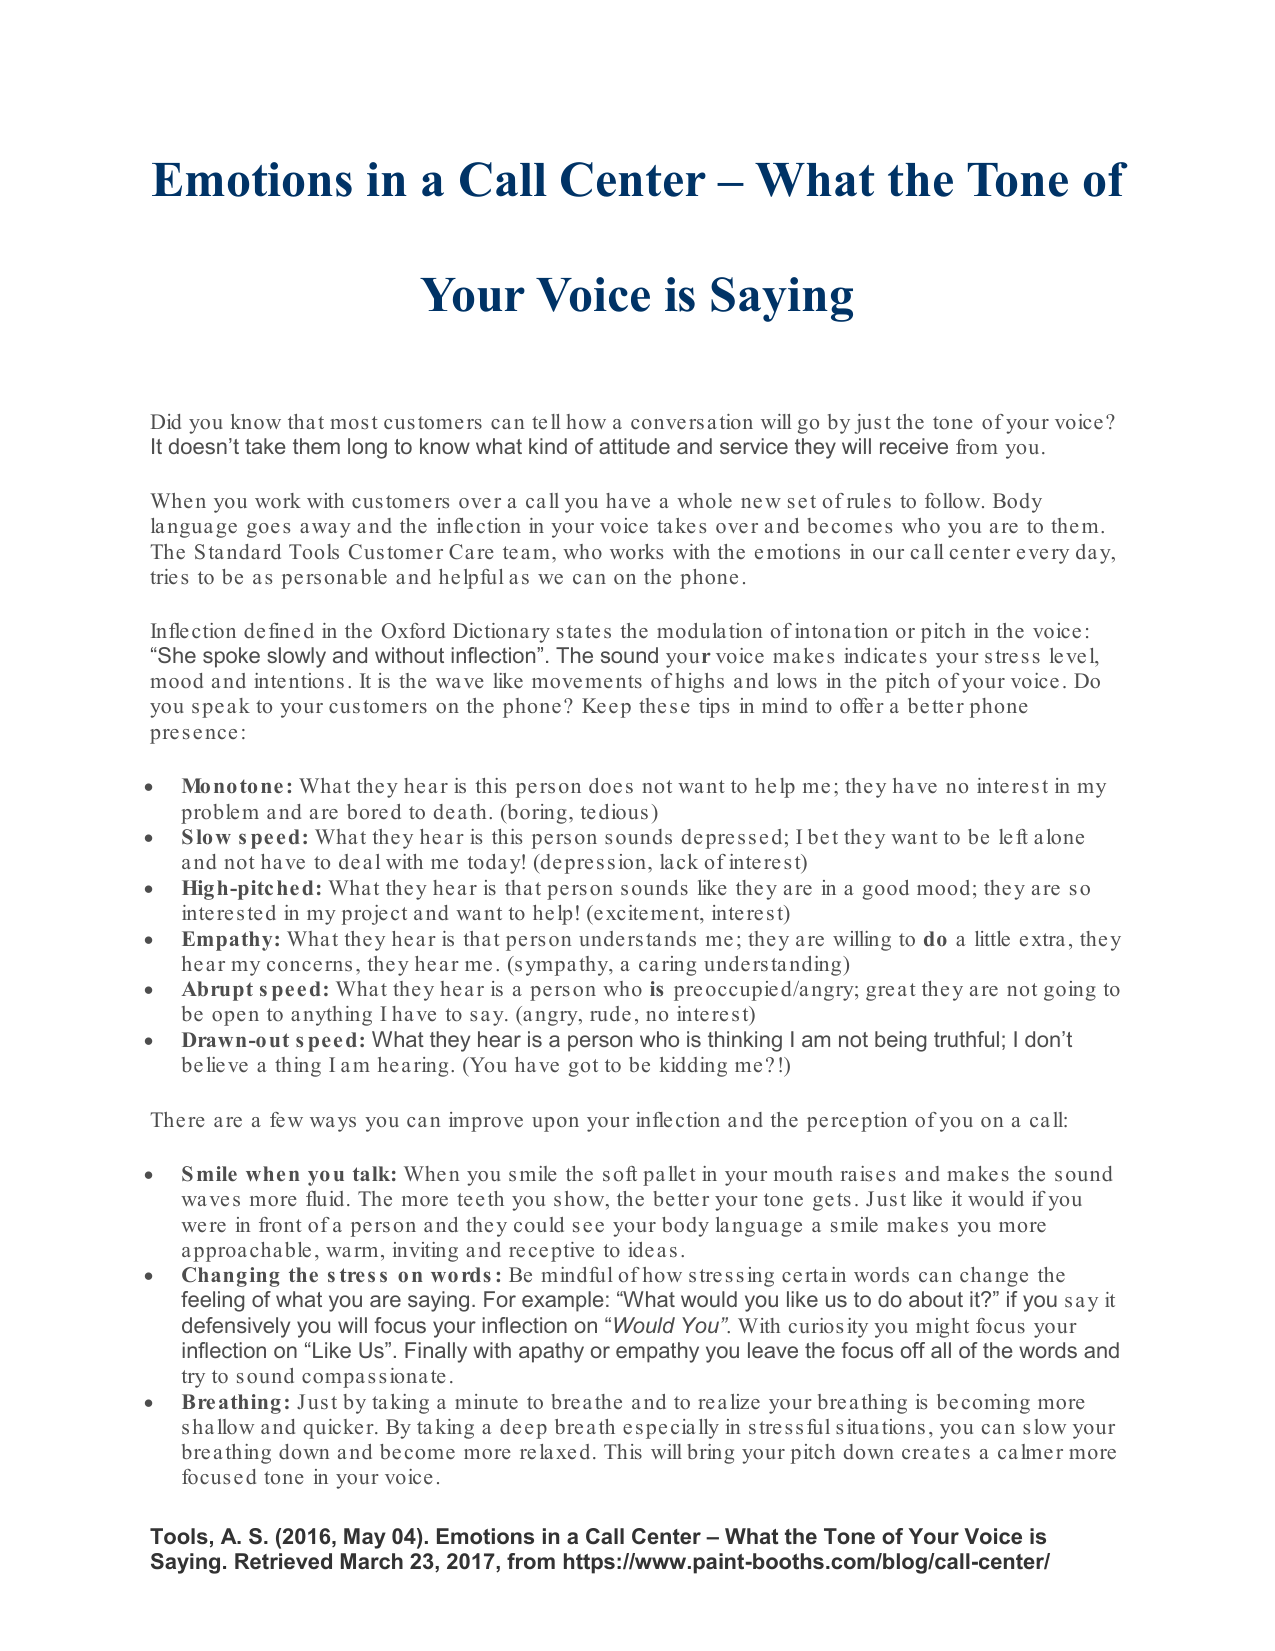 Emotions in a Call Center – What the Tone of Your Voice is